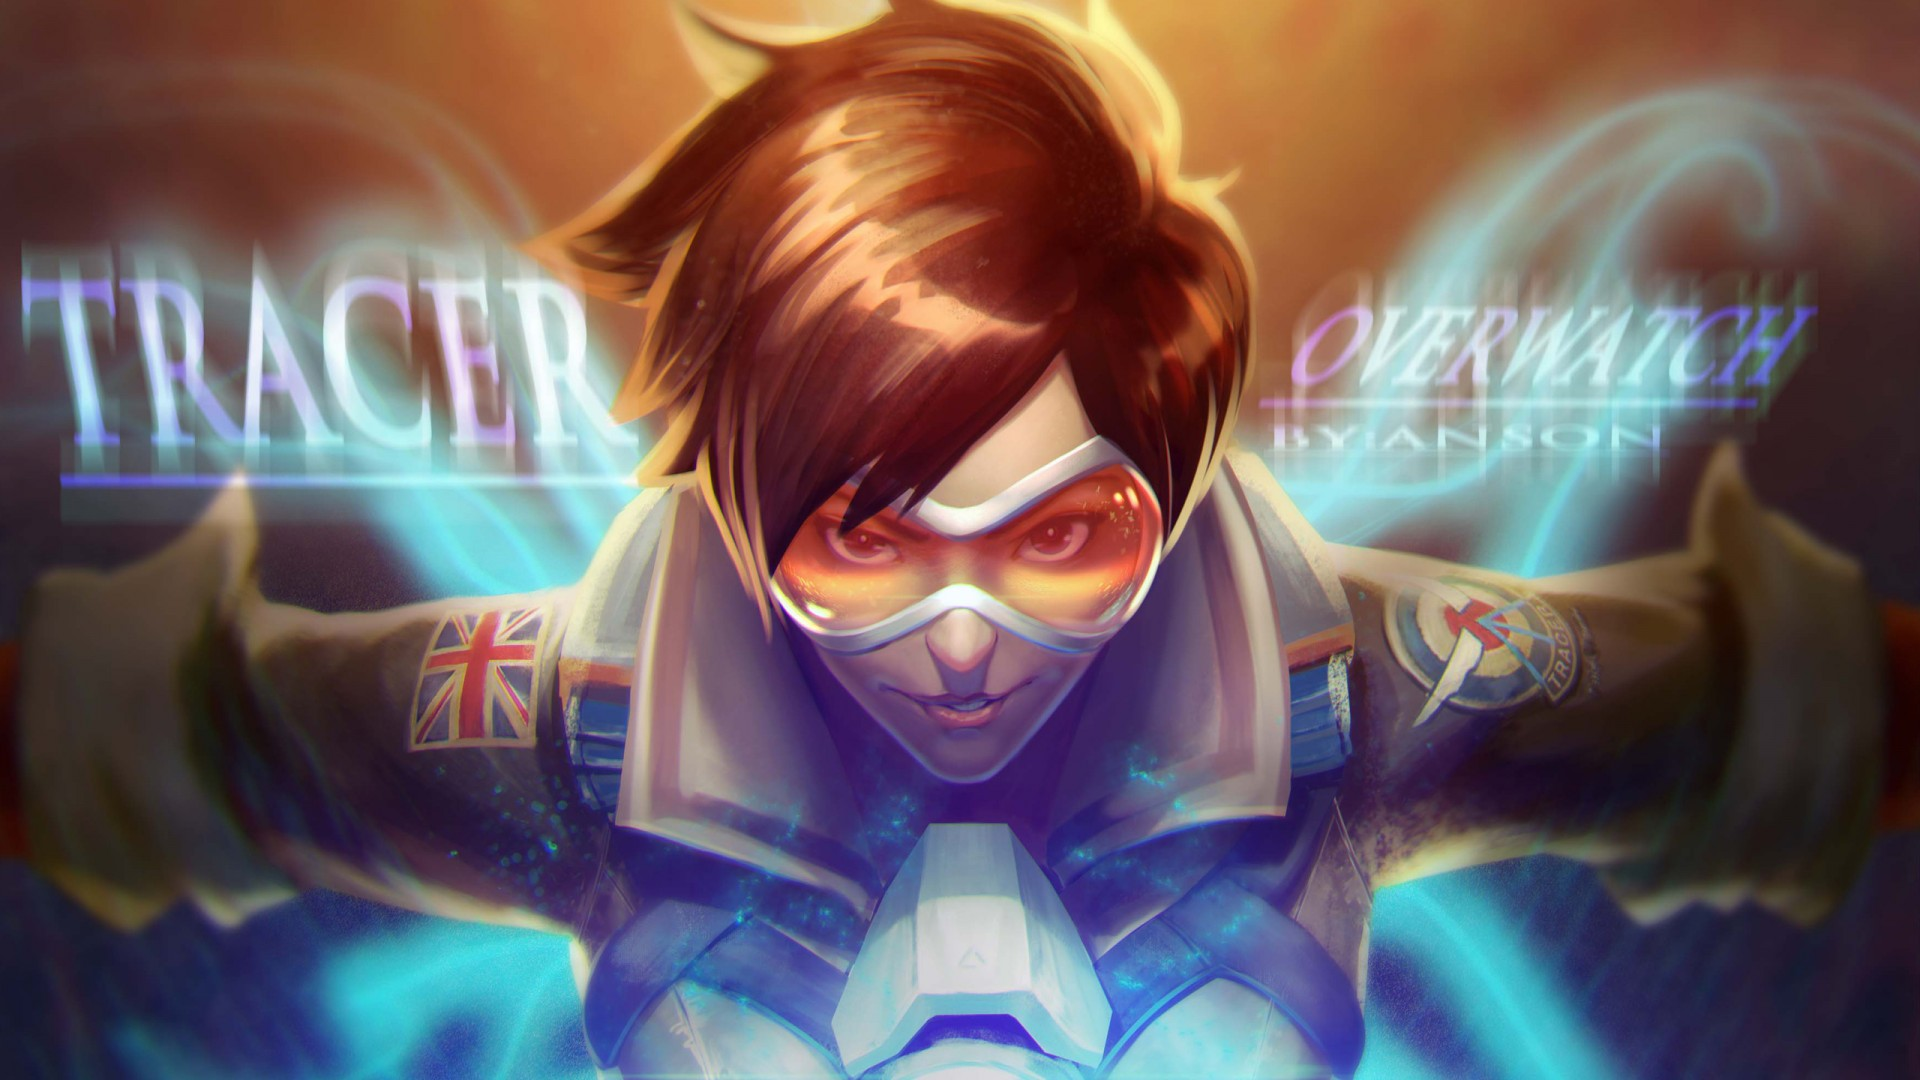 Love Wallpapers Iphone X Tracer Fan Art Wallpapers Hd Wallpapers Id 19179